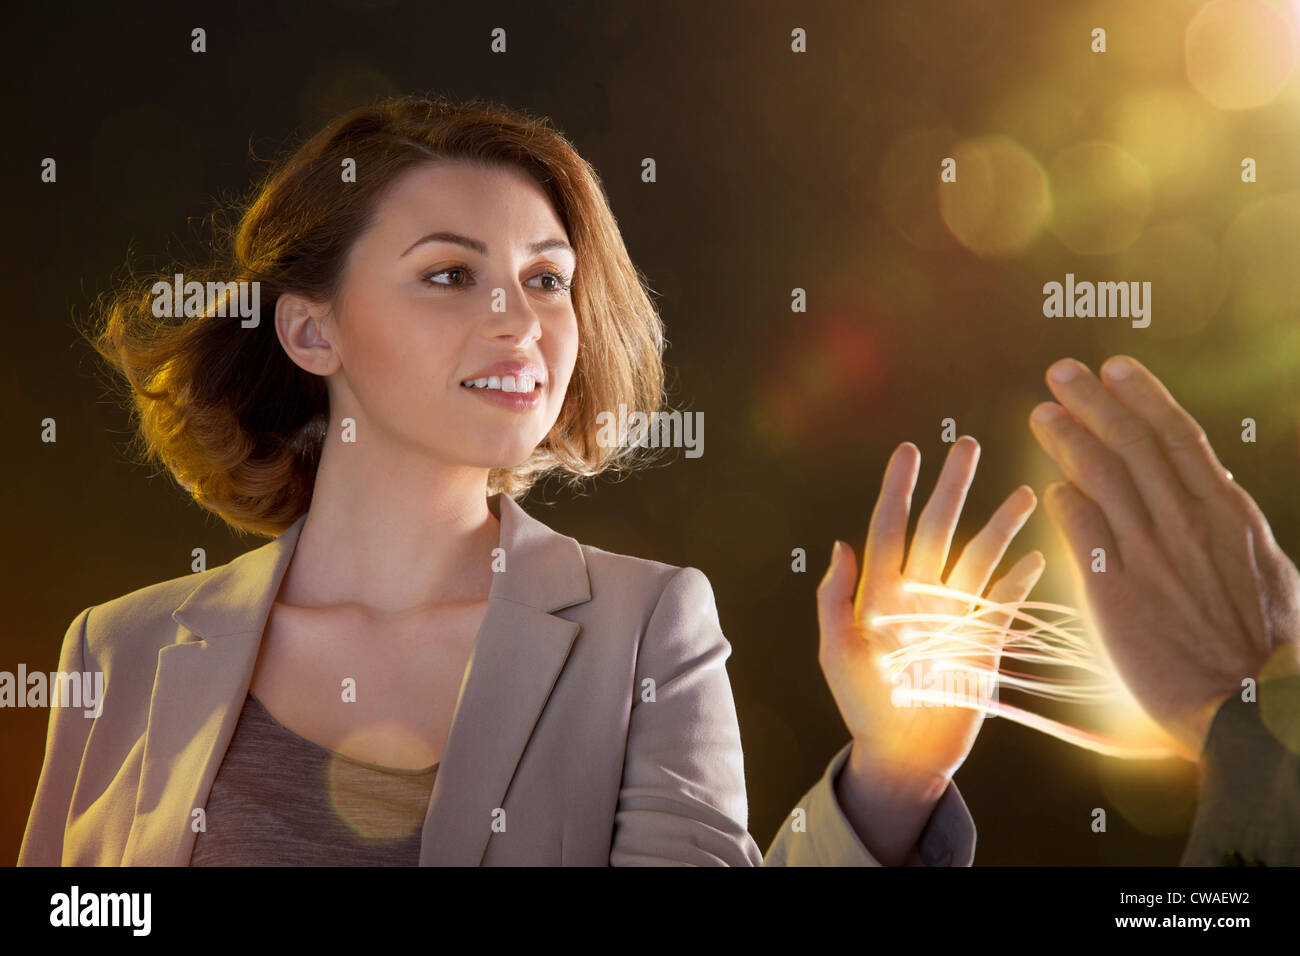 Young woman touching light streams, connecting to another person - Stock Image